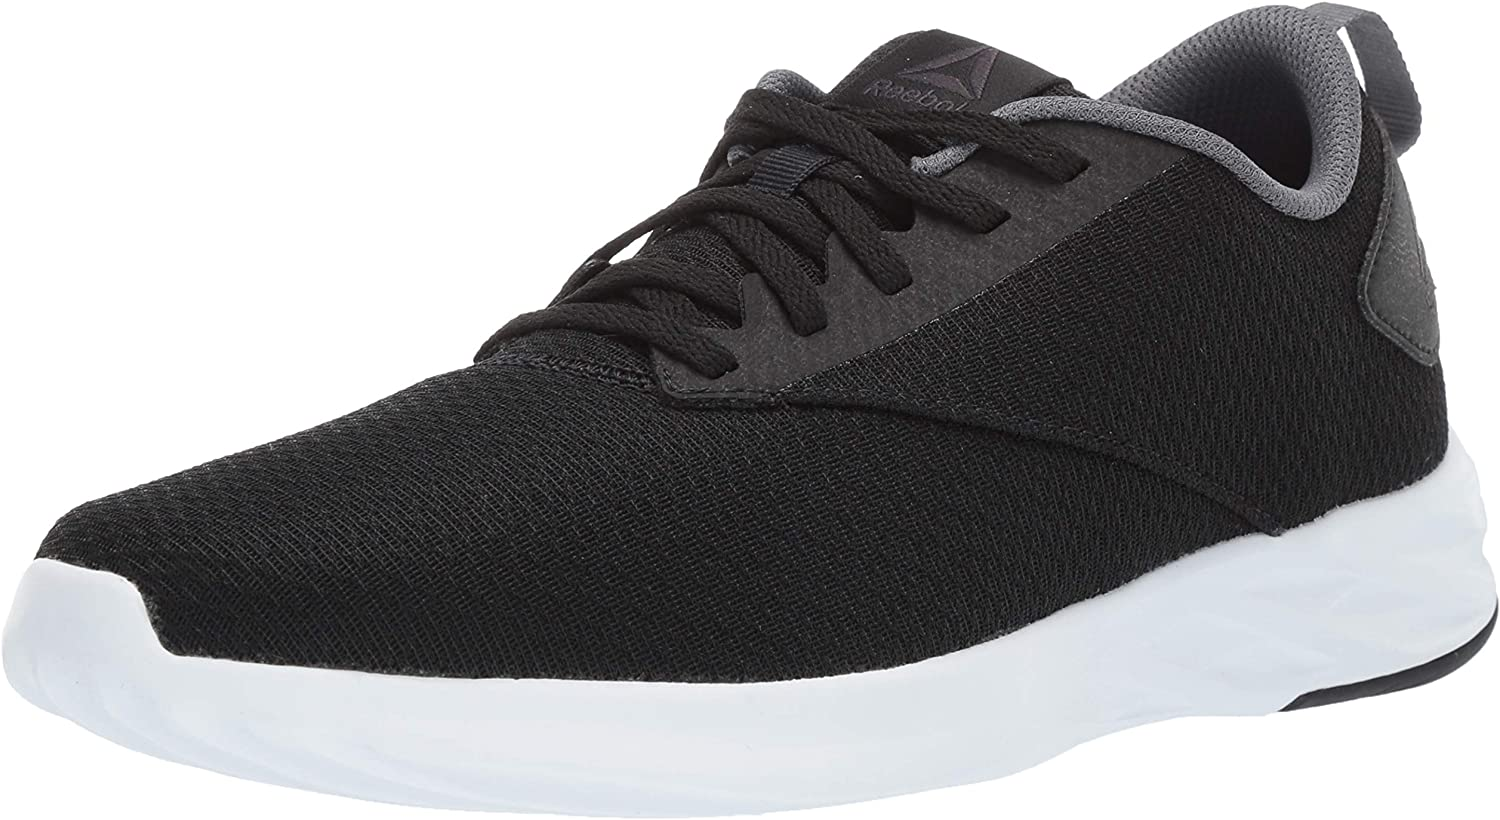 Reebok Men's Astroride Soul 2.0 Cross